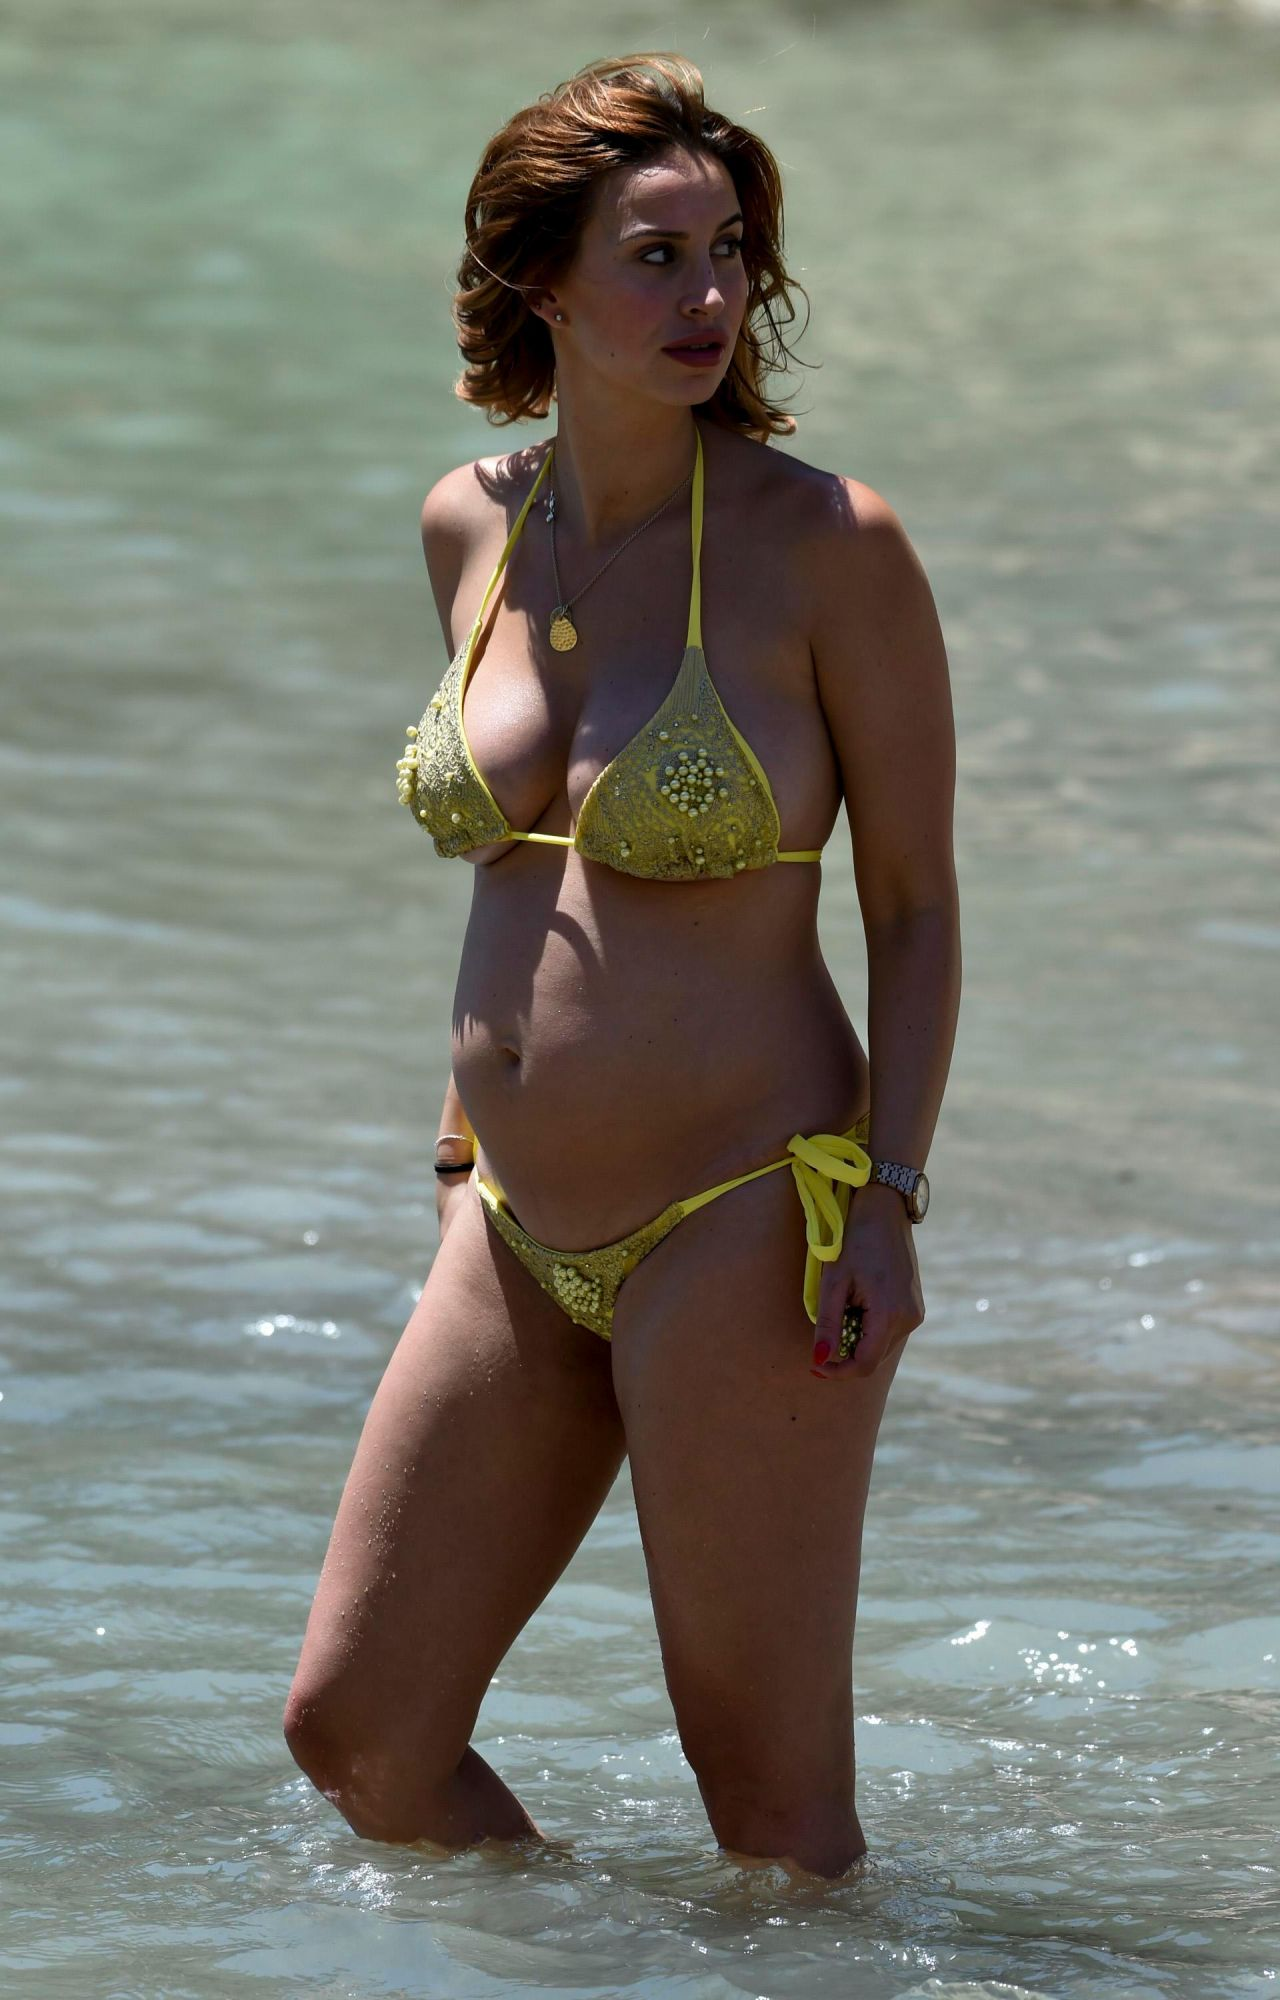 ferne-mccann-in-yellow-bikini-on-beach-in-majorca-spain-07-07-2017-10.jpg (1280×2000)